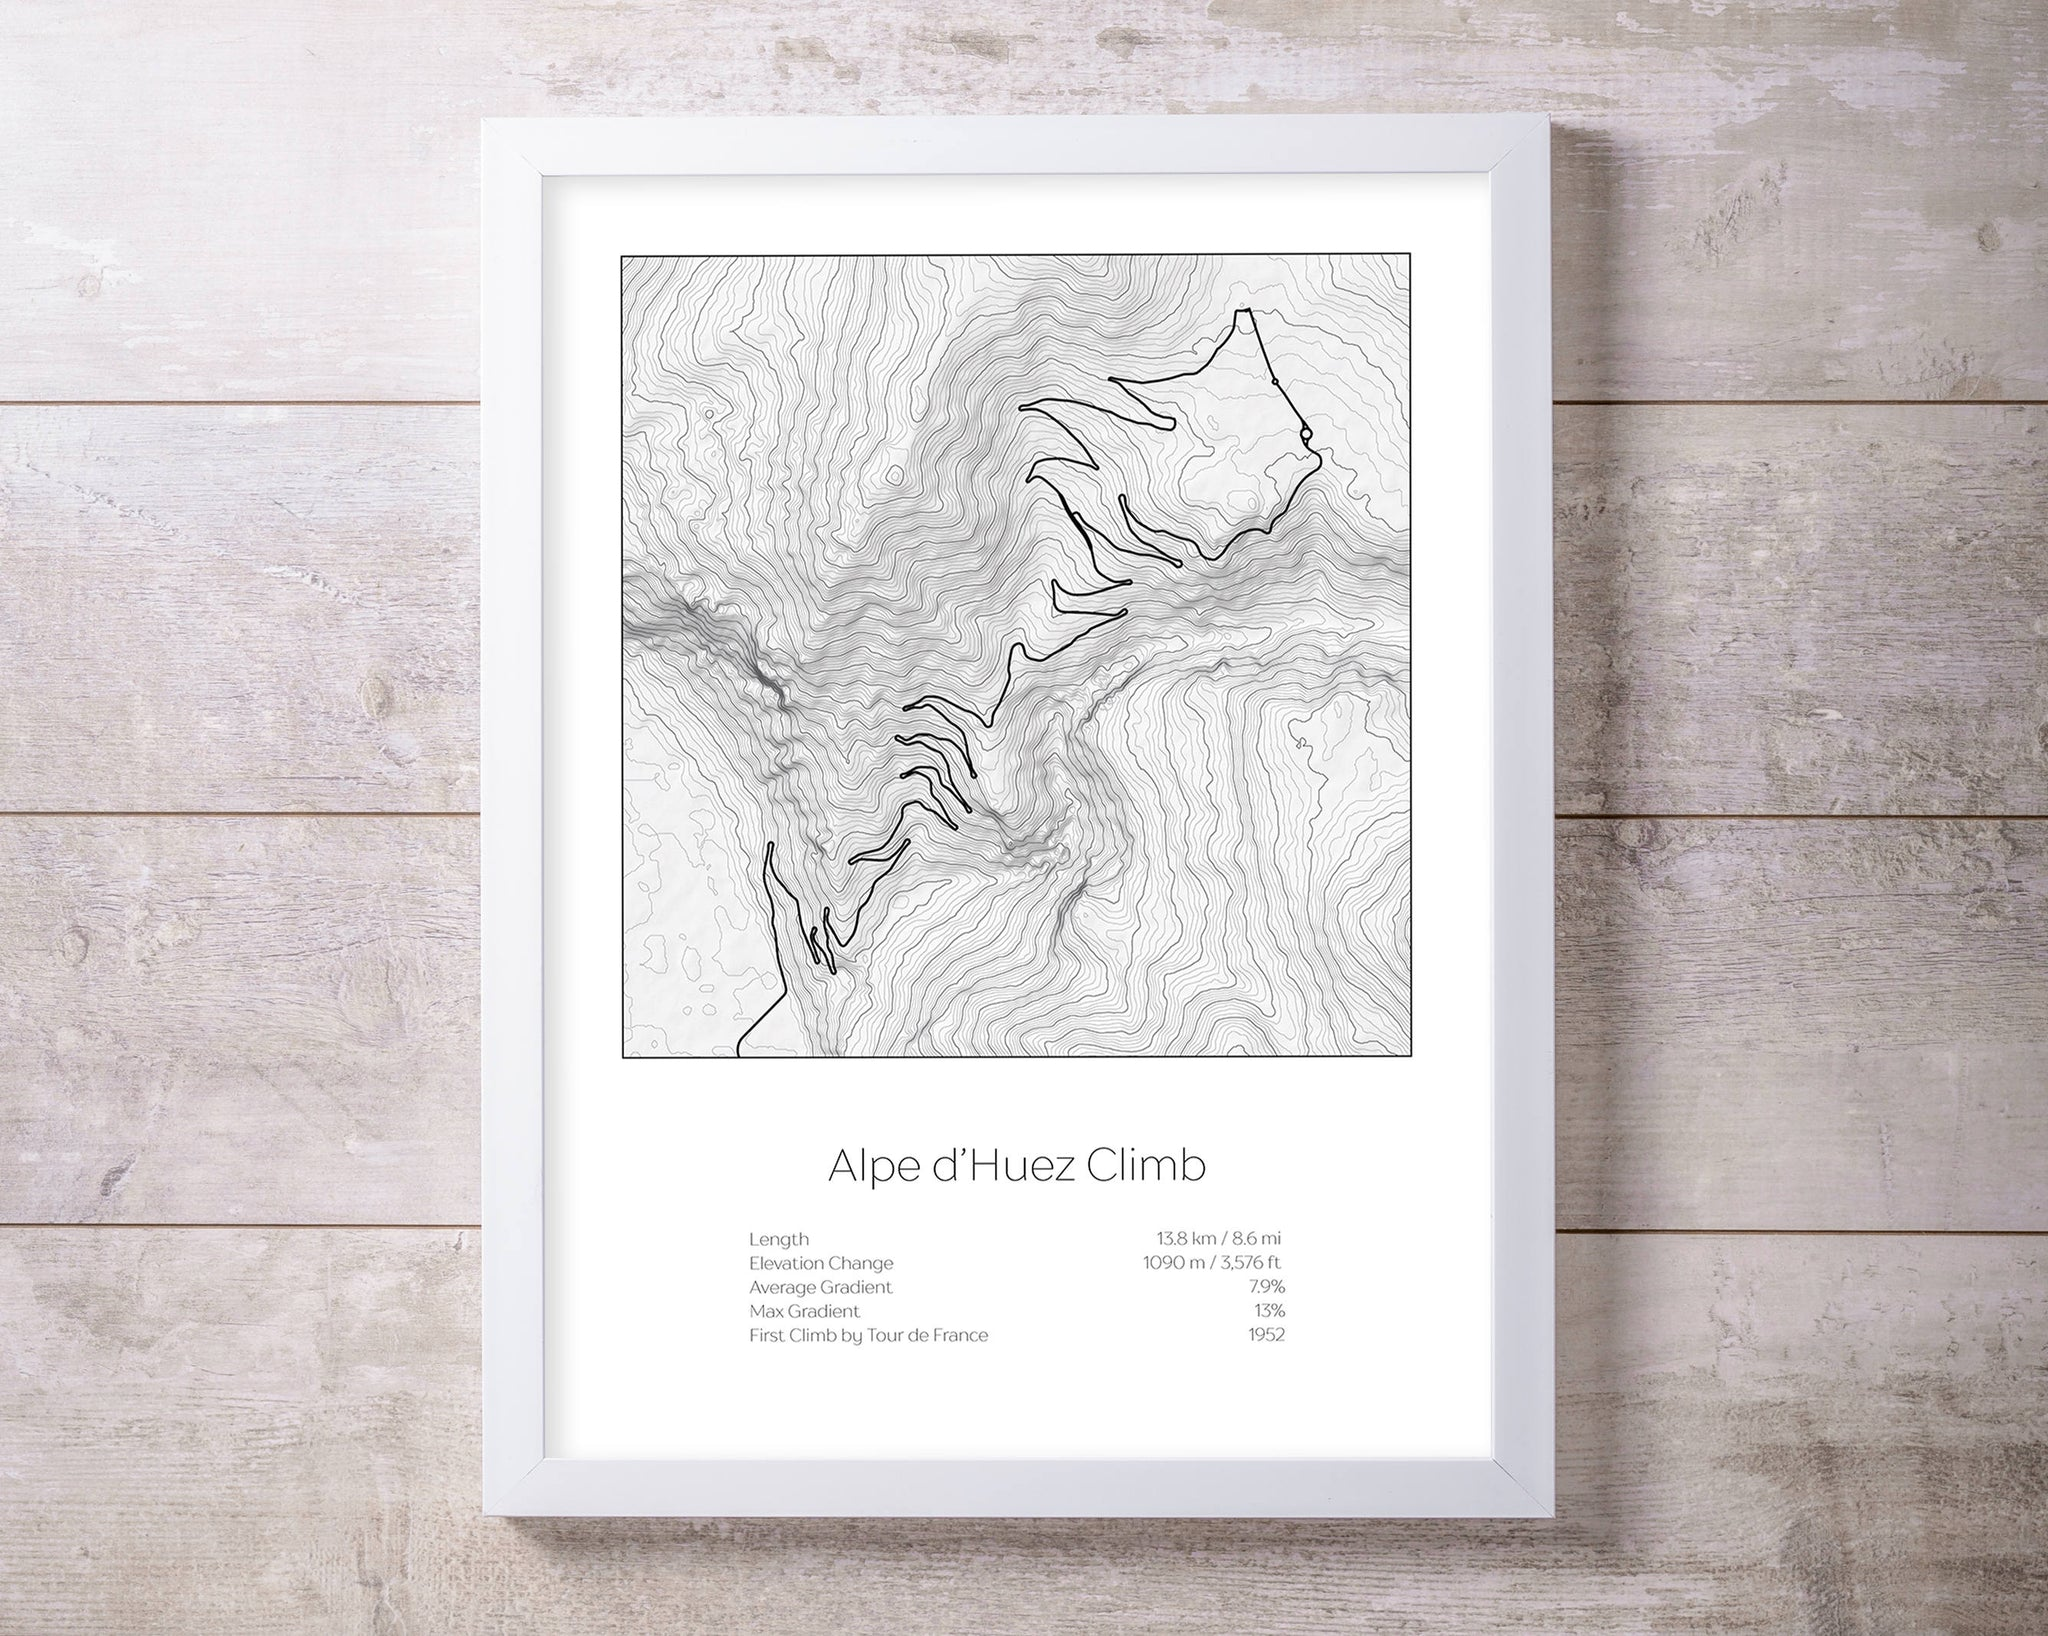 Alpe d'Huez climb, Tour de France Bike raceTopography Elevation Print Wall Art